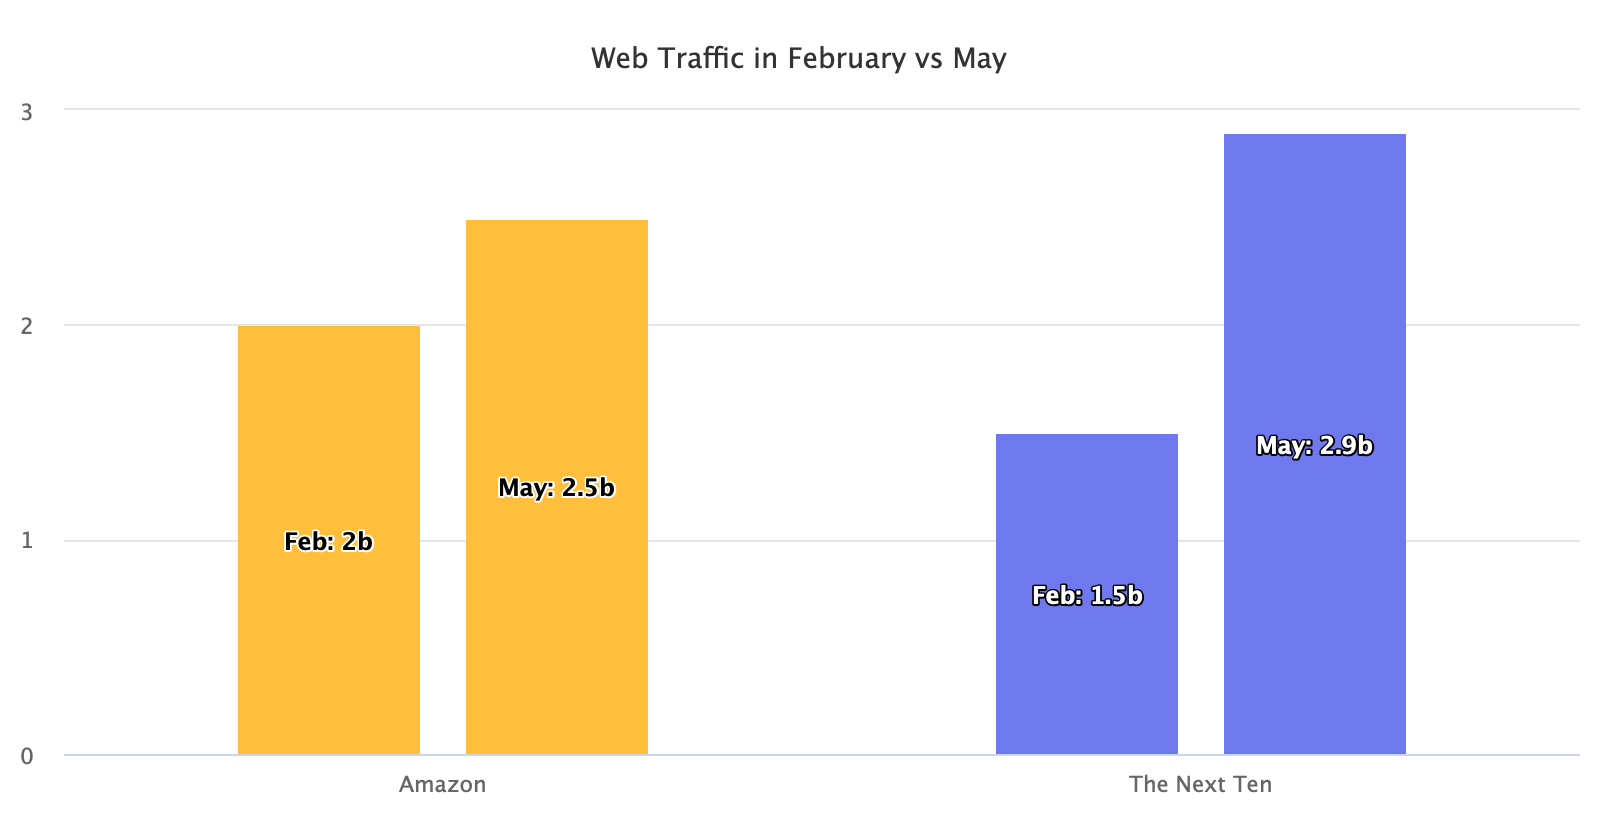 Web traffic in February vs May